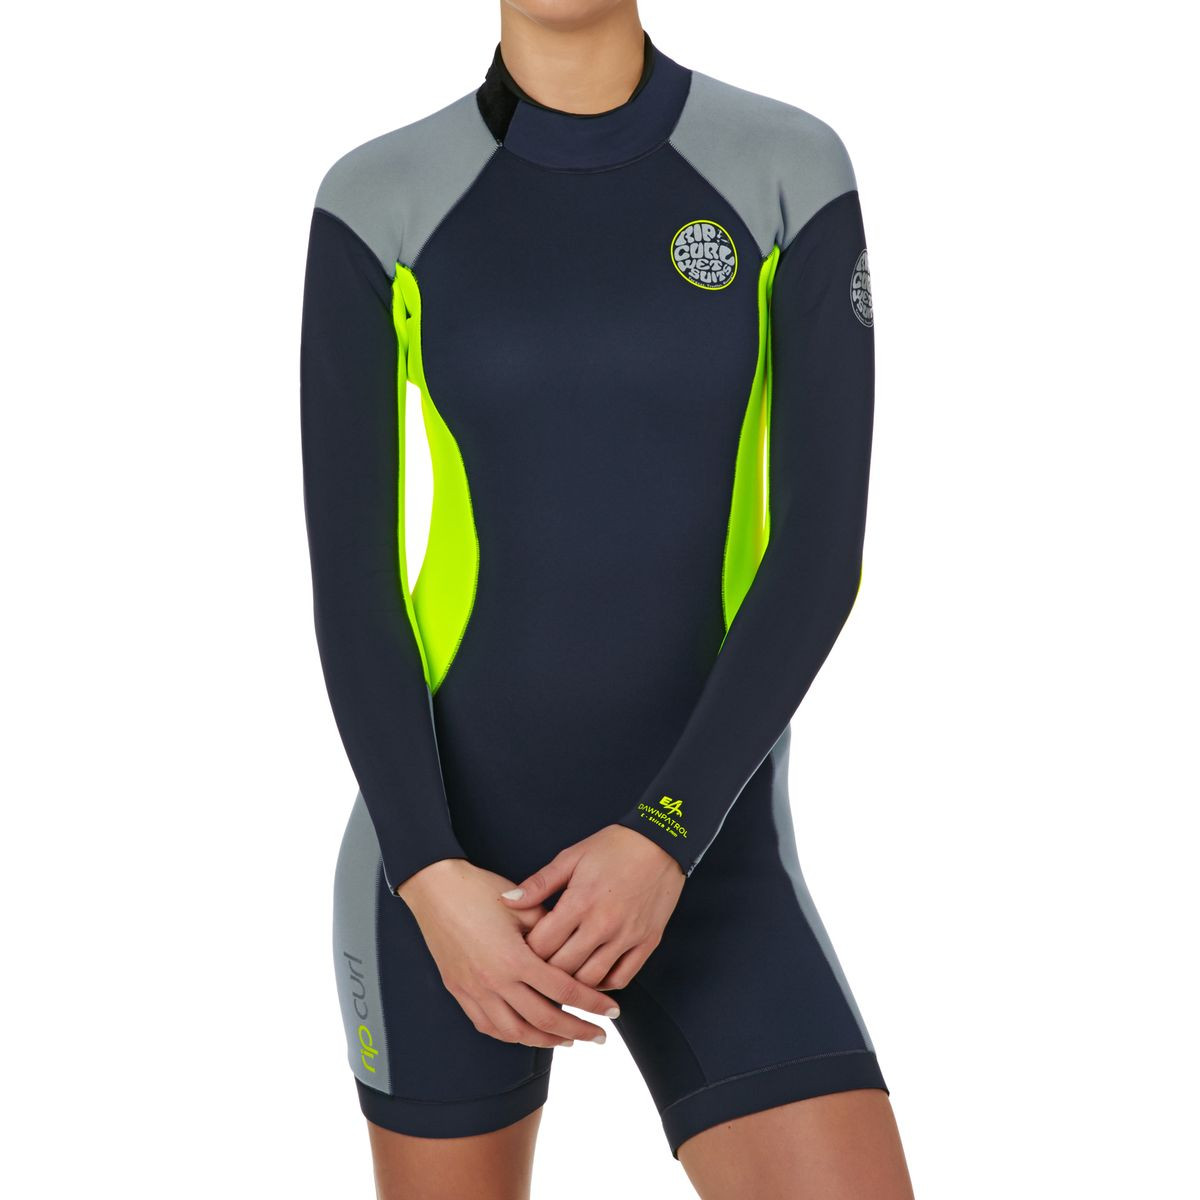 Rip Curl Womens Dawn Patrol 2mm Back Zip Long Sleeve Shorty Wetsuit - Charcoal